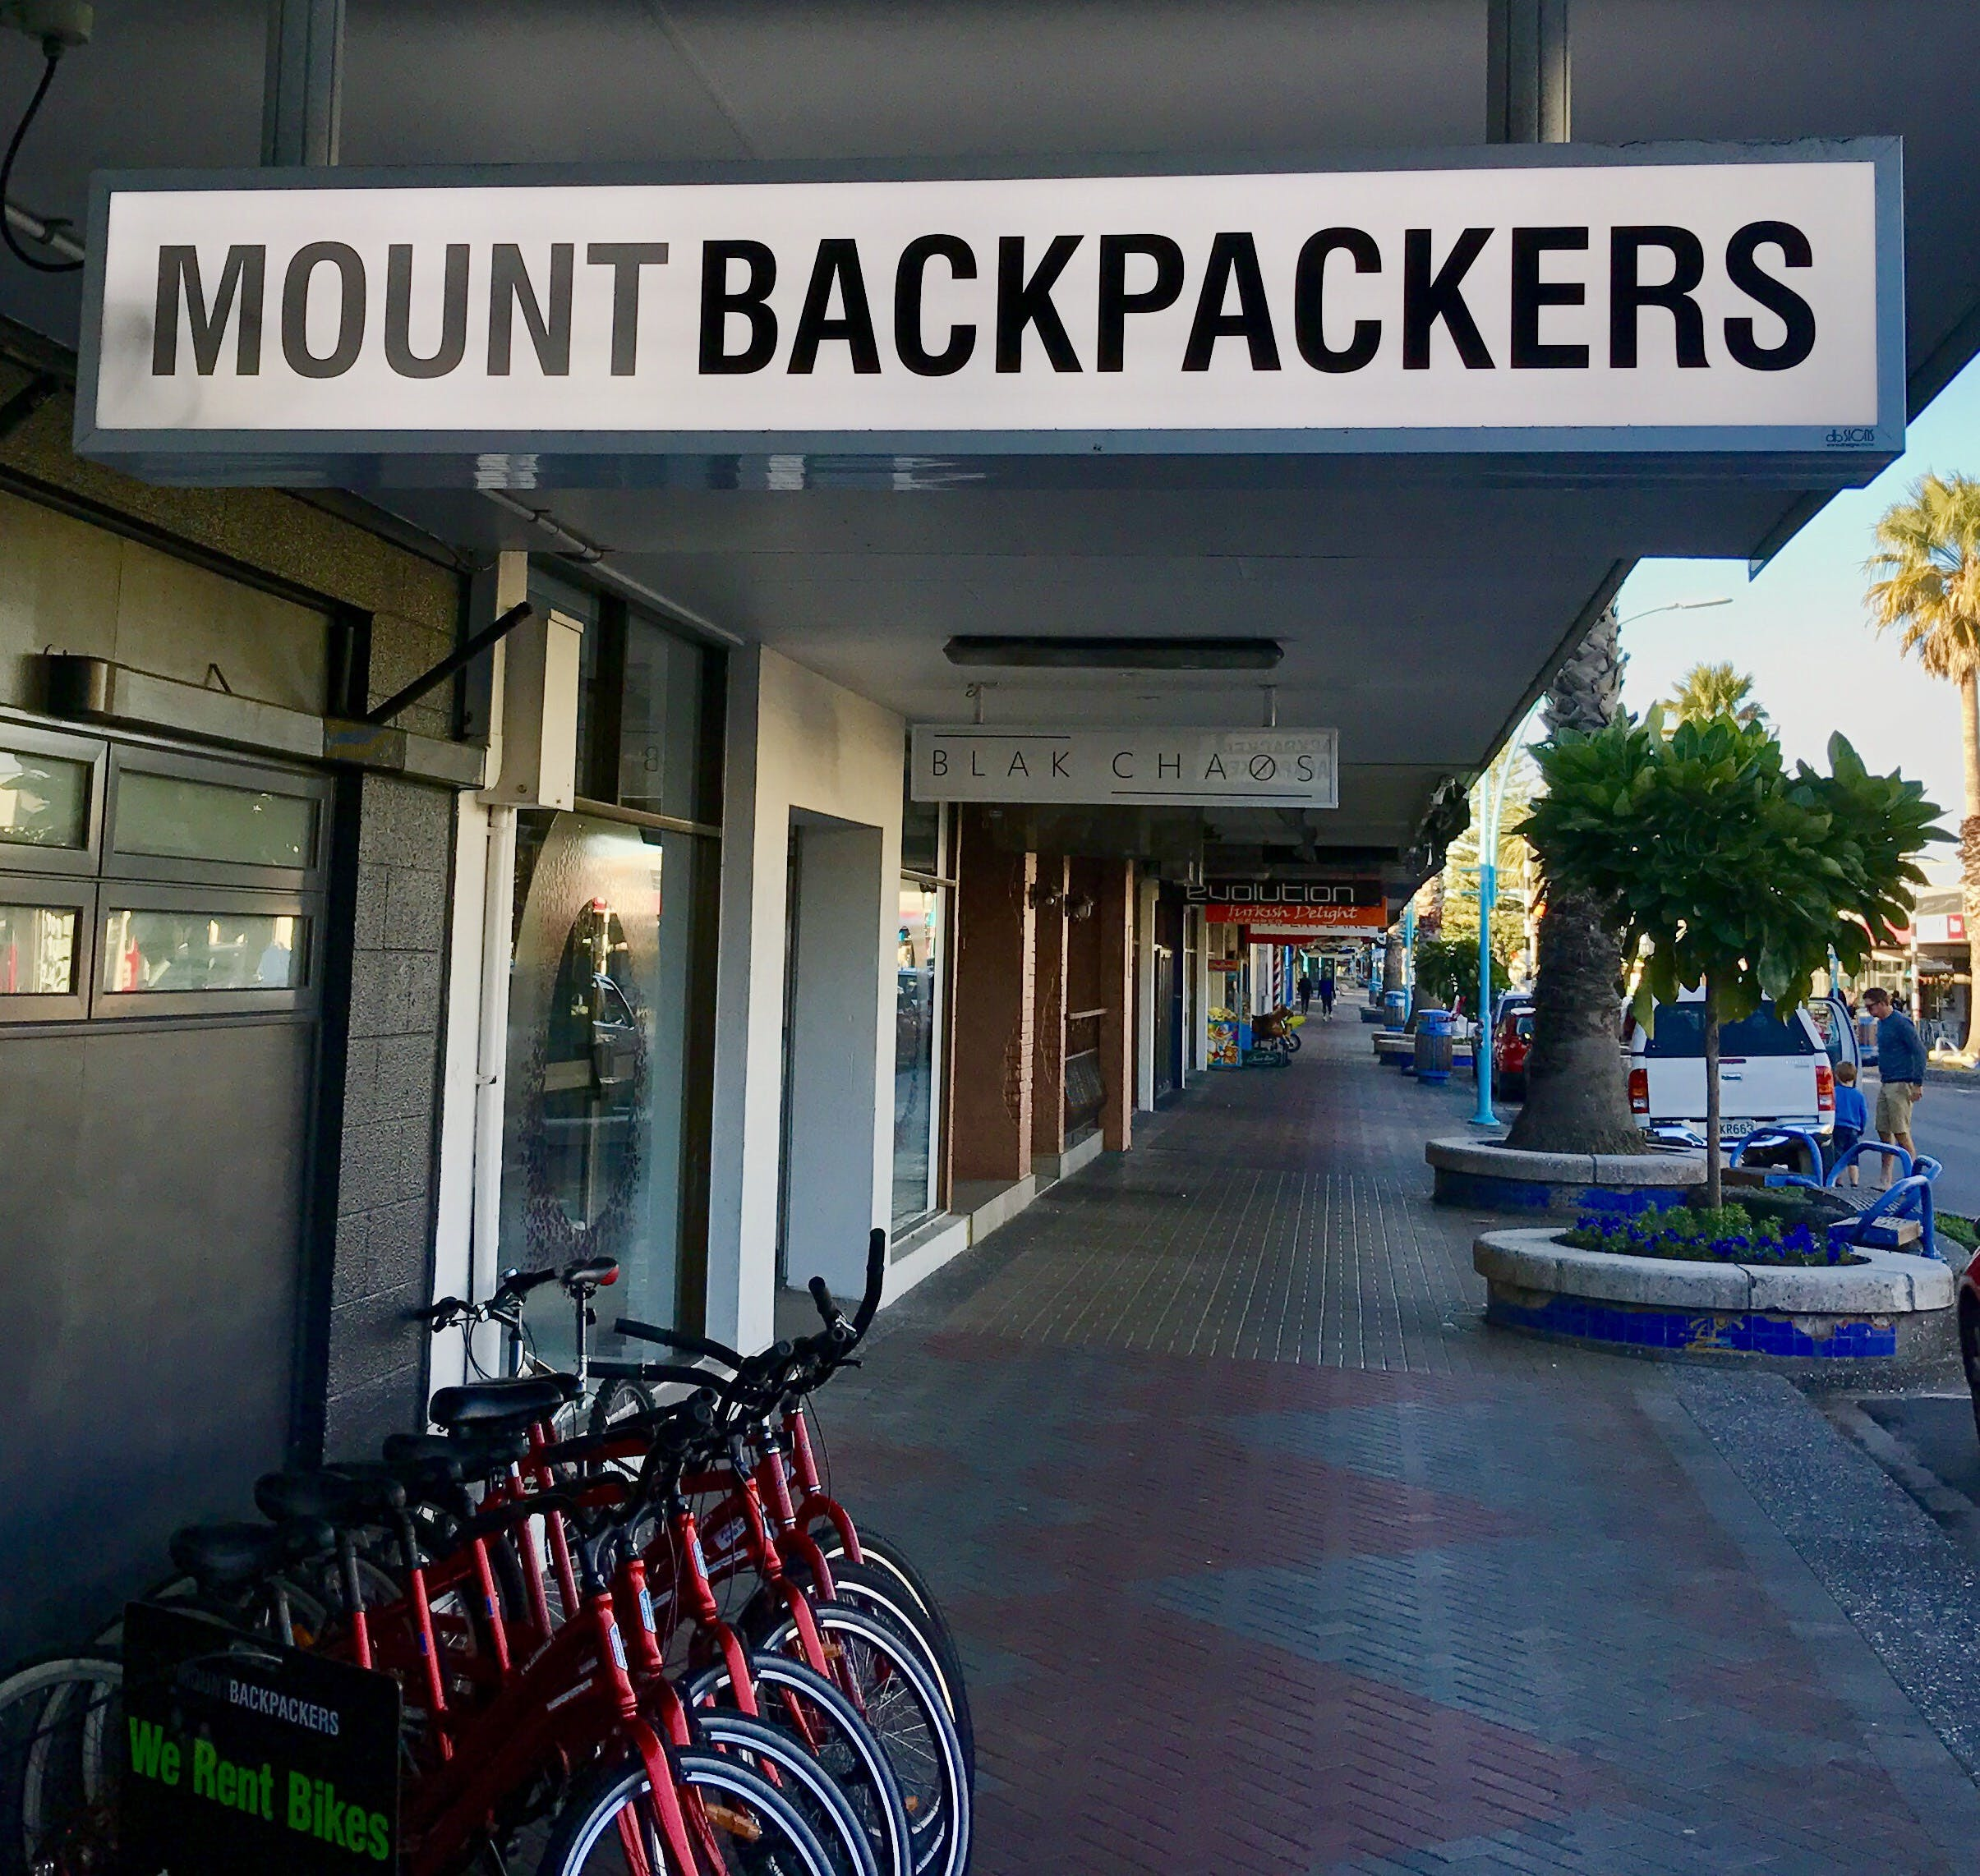 High street downtown Mount Maungui - right in the heart of the action